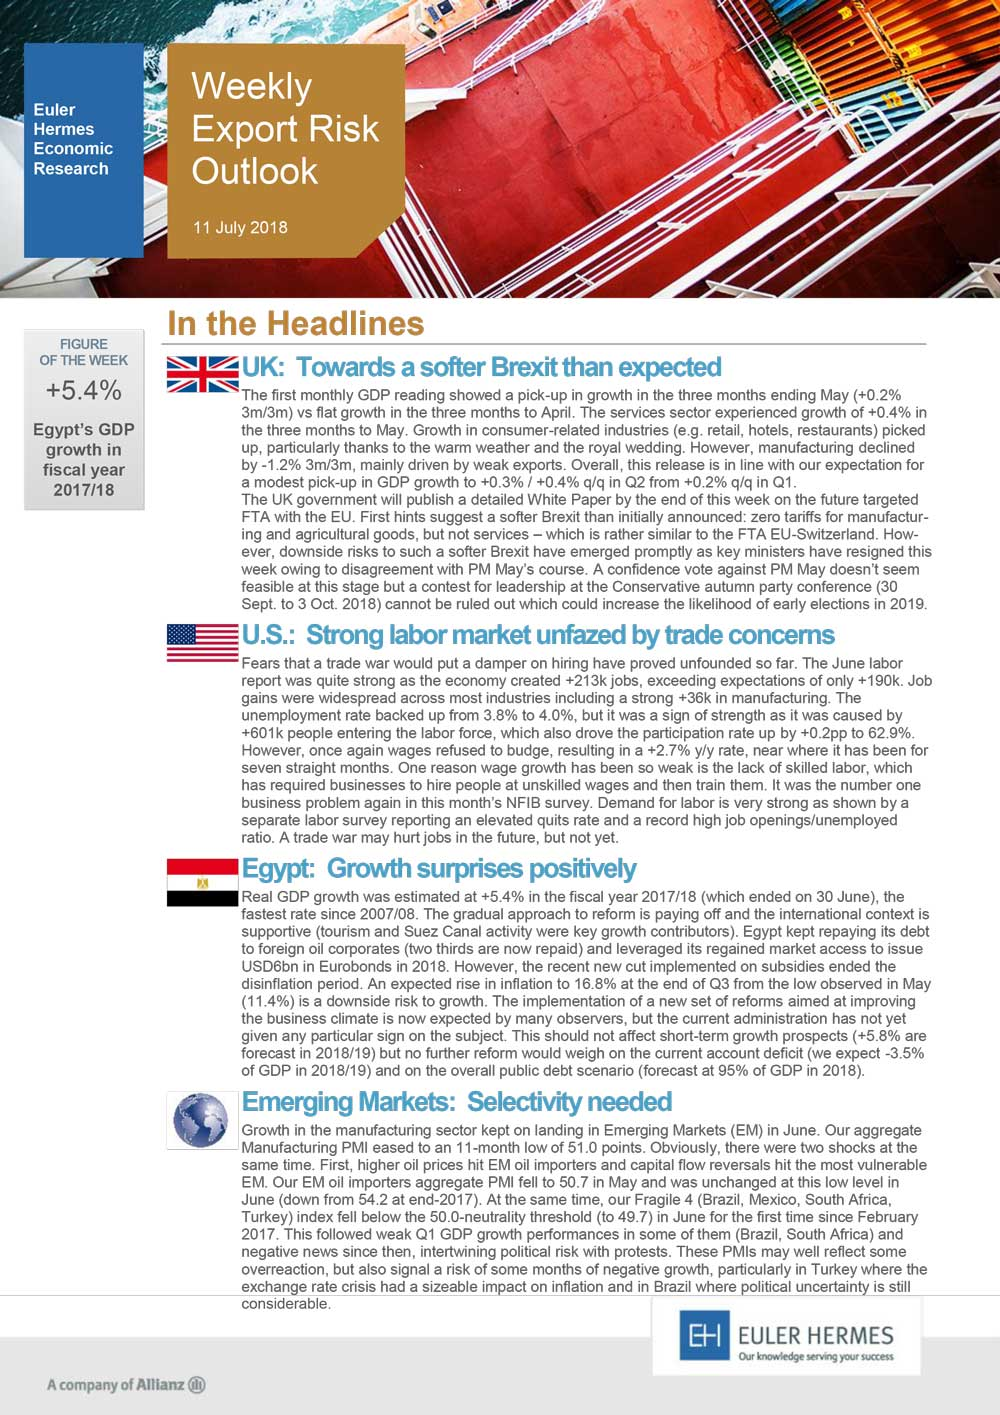 http://www.au-group.com/wordpress/wp-content/uploads/2018/07/uk-us-egypt-emerging-markets-weekly-export-risk-outlook-11July2018.pdf